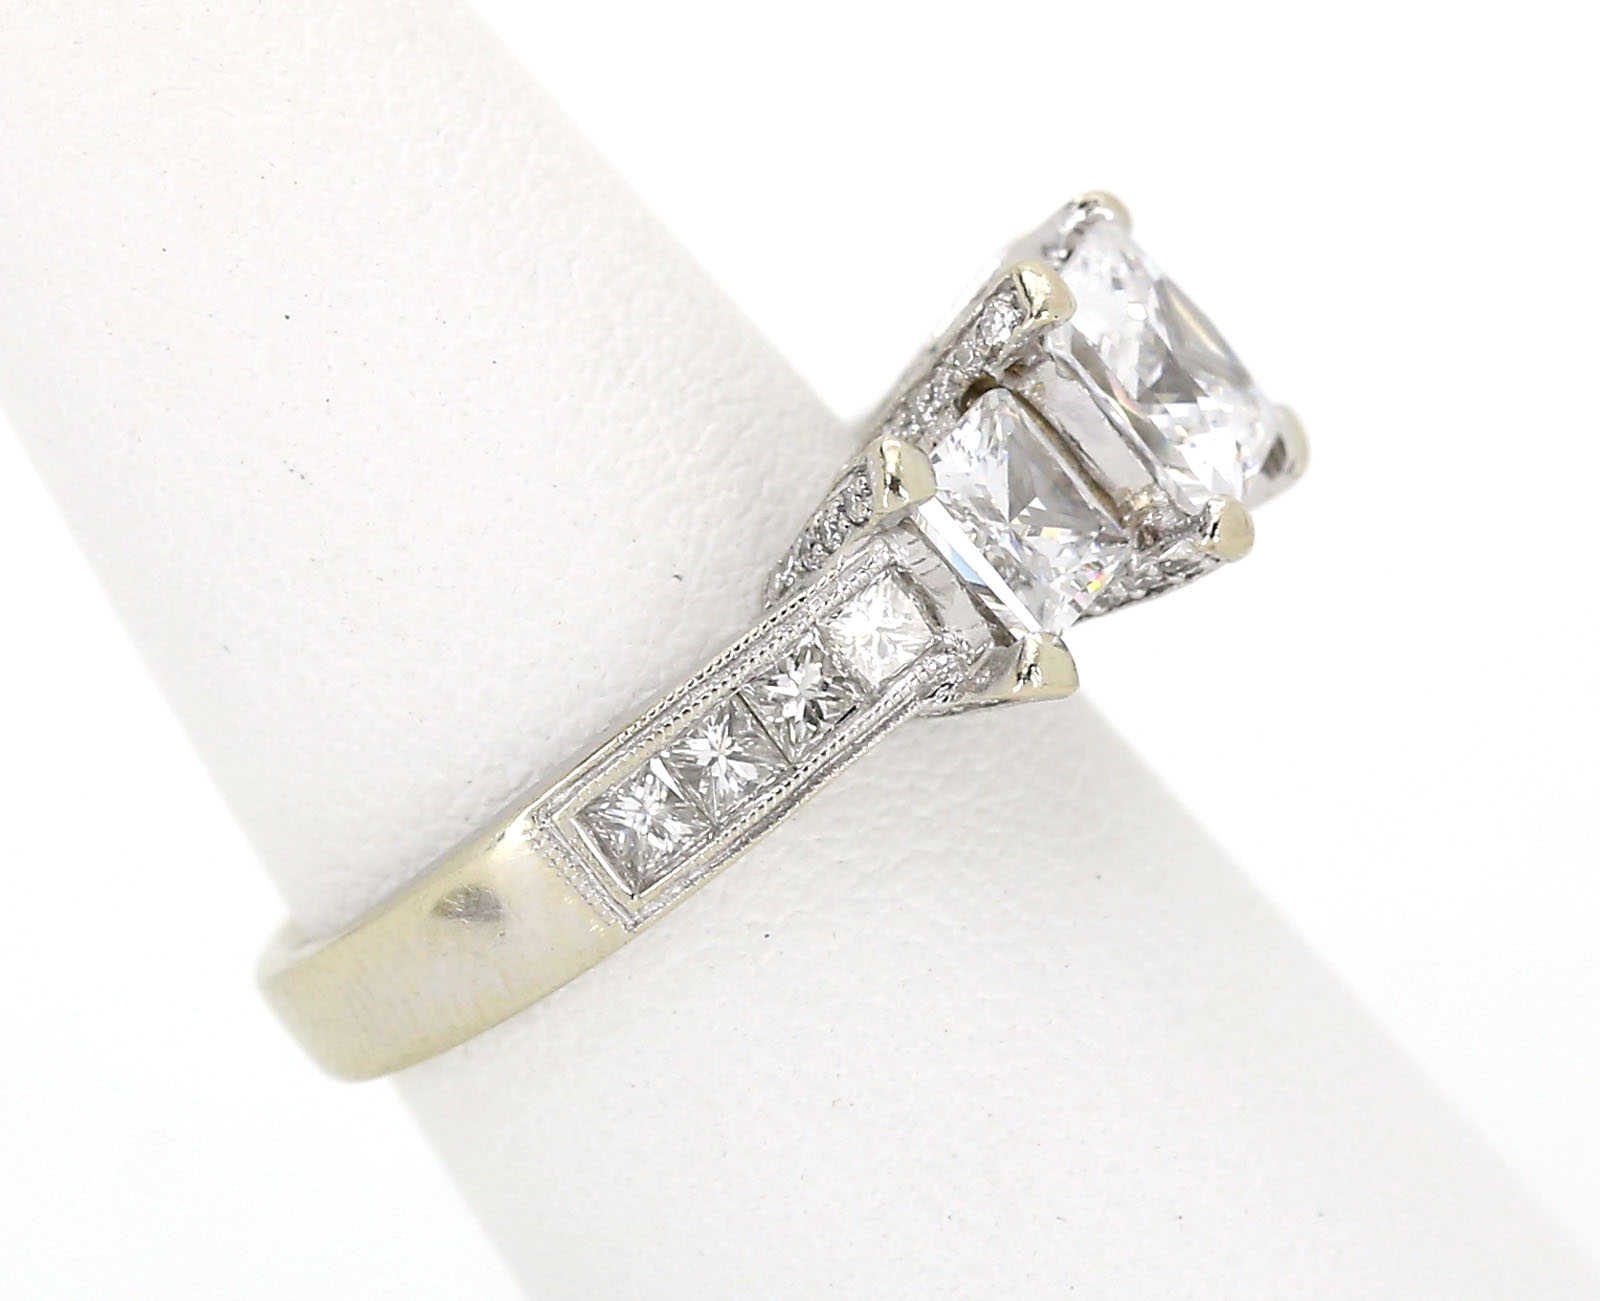 SOLID 14K WHITE GOLD 3 STONE CZ SOLITAIRE RING W 94 PTS DIA LADIES RING